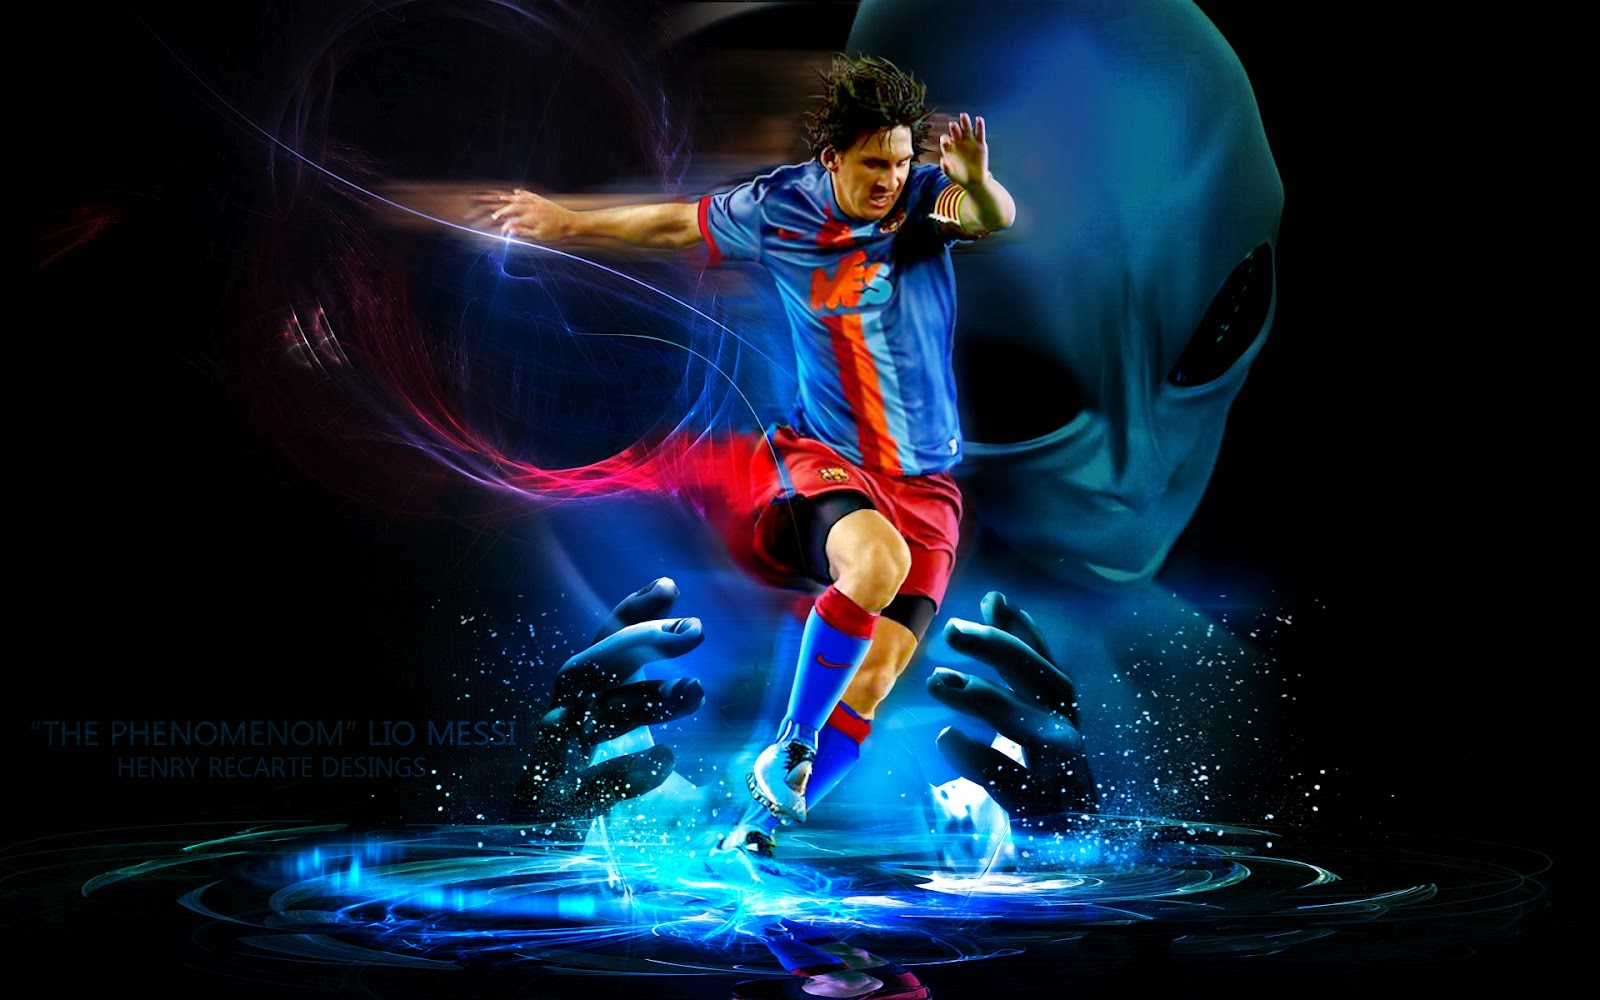 messi-wallpaper-7 | HD Wallpapers, HD images, HD Pictures